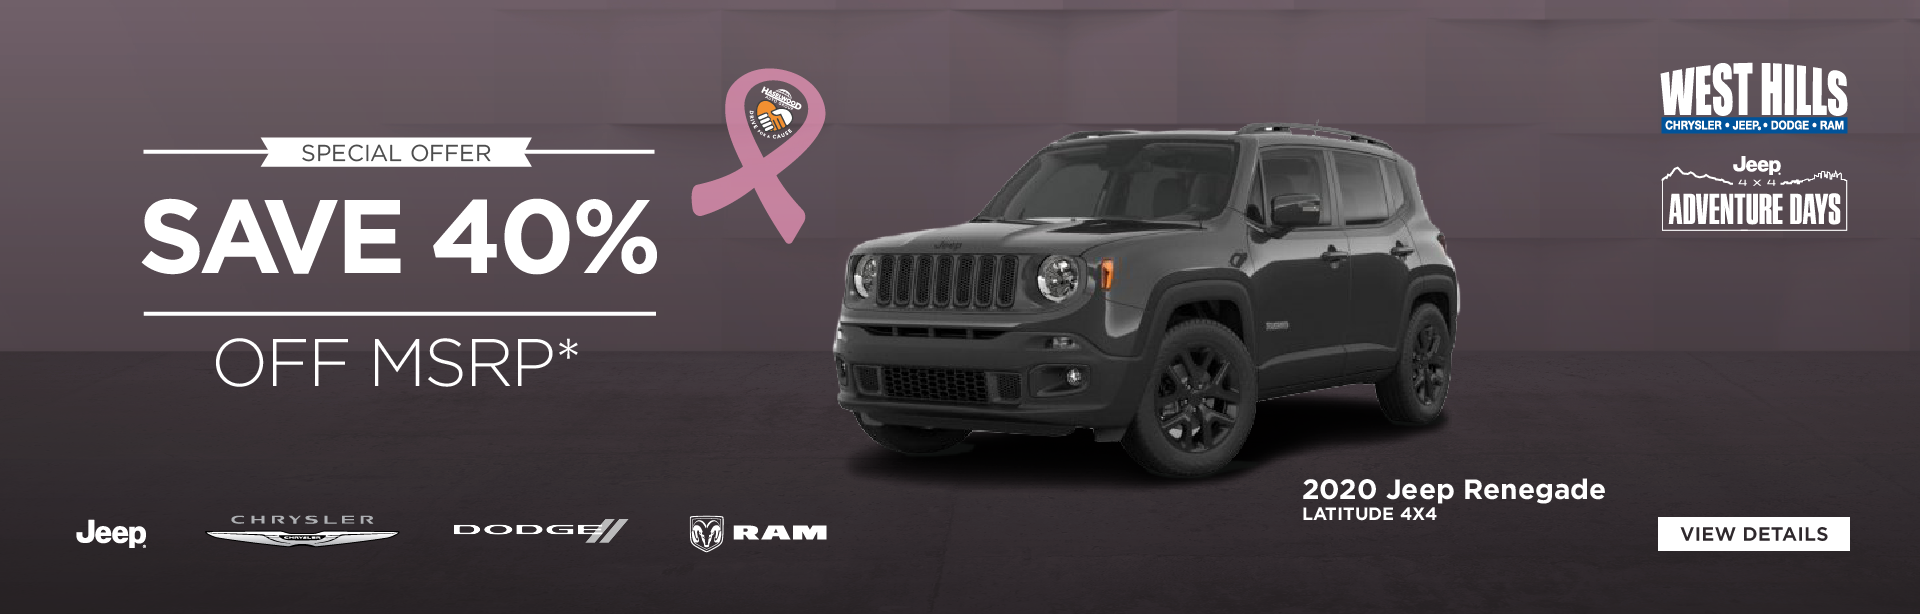 2020 Jeep Gladiator Sport S (featured vehicle) $275/mo. for 36 mos.*  $0 Due at Signing    *Offer valid on 2020 Jeep Gladiator Sport S. $275/mo. for 36 mos., $0 Due at Signing. Based on MSRP example $43,765. 36 months at $13.89 per $1,000 financed. VIN: 11C6HJTAG6LL128864. Subject to credit approval. Not all lessees will qualify for lowest payment through participating lender. Option to purchase at lease end. Excludes state and local taxes, tags, registration and title, insurance and dealer charges.  A negotiable dealer documentary service fee of up to $150 may be added to the sale price or capitalized cost. Lessee pays for excess mileage, wear and tear. Offer expires:  9/30/2019.